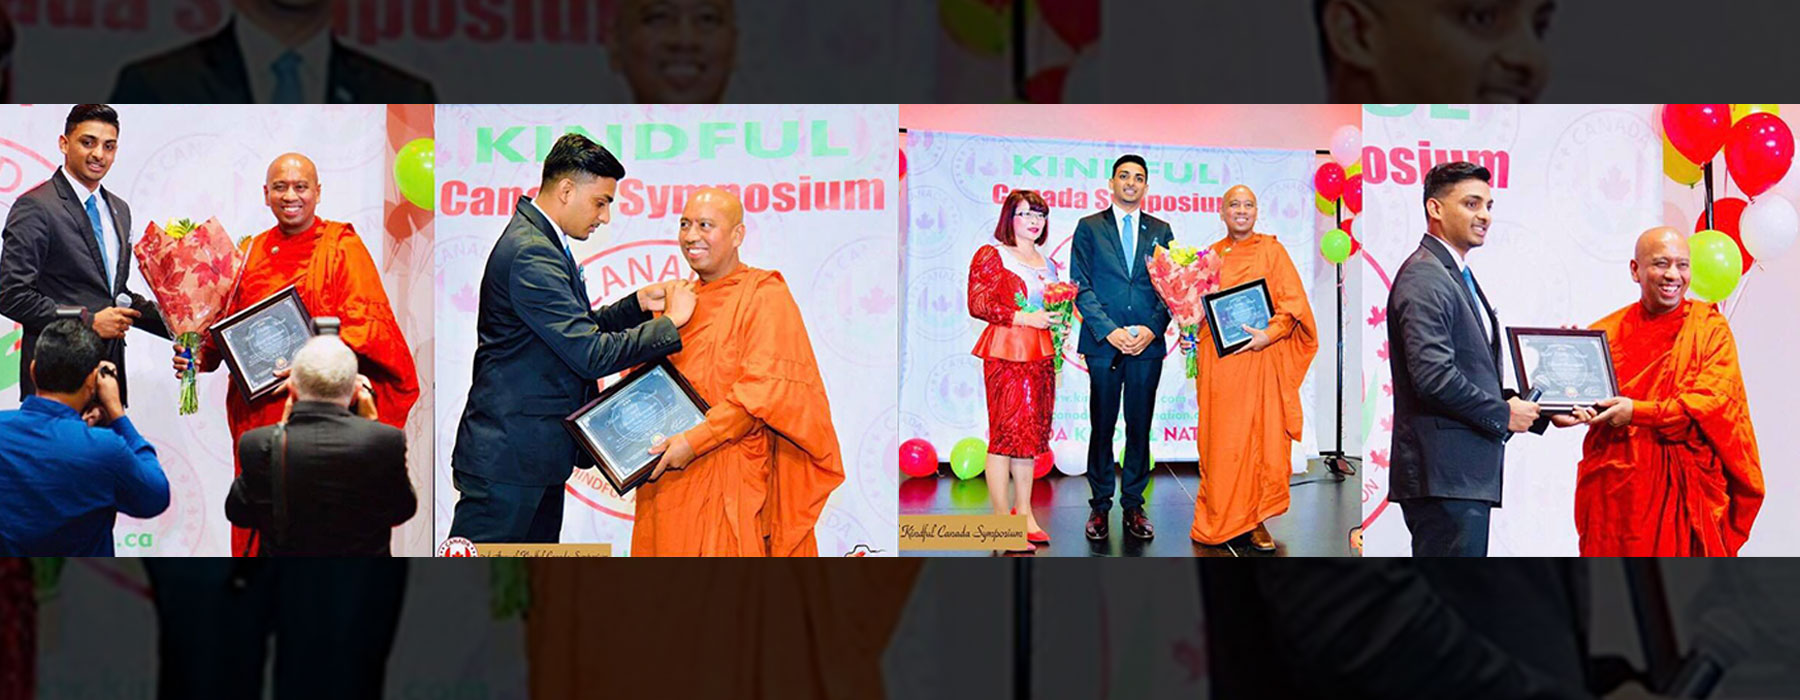 Bhante Saranapala, the founder & president of Canada: A Mindful and Kind Nation, has been honoured and appointed as the UN Civility Ambassador by the iChange Nation